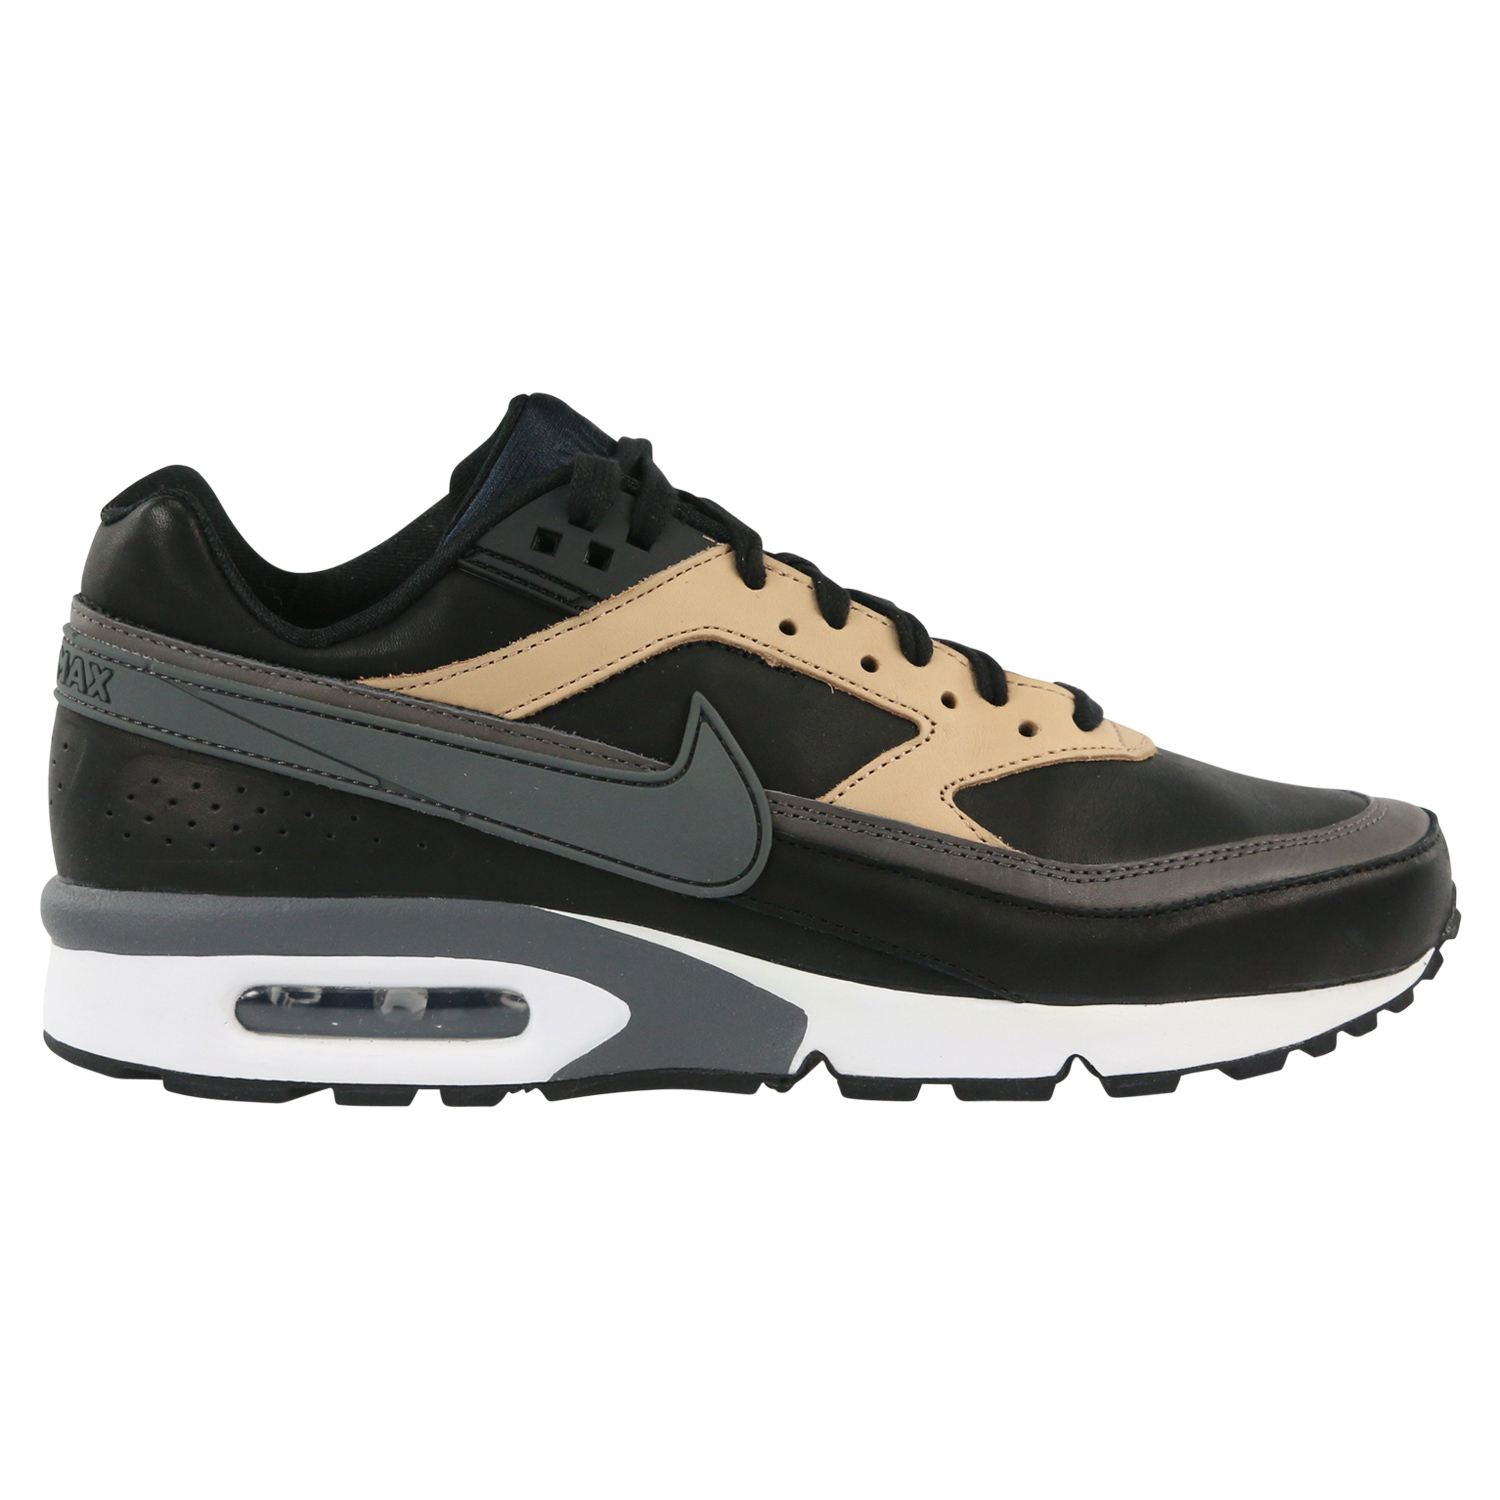 nike air max bw premium herren sneaker schuhe turnschuhe. Black Bedroom Furniture Sets. Home Design Ideas